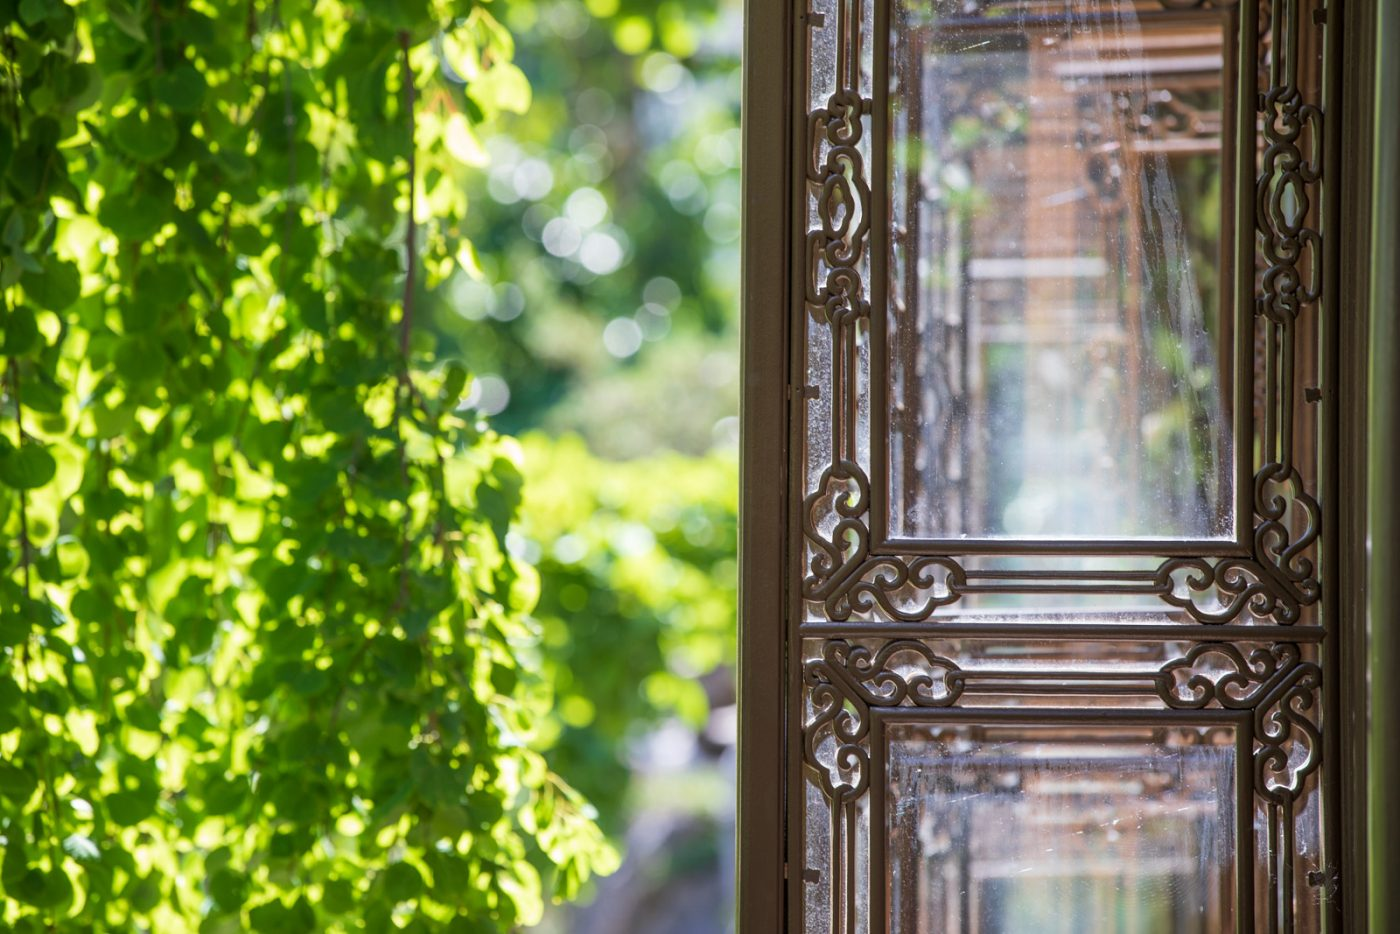 Photo: The carved windows of the tea house with Cercidiphyllum pendula